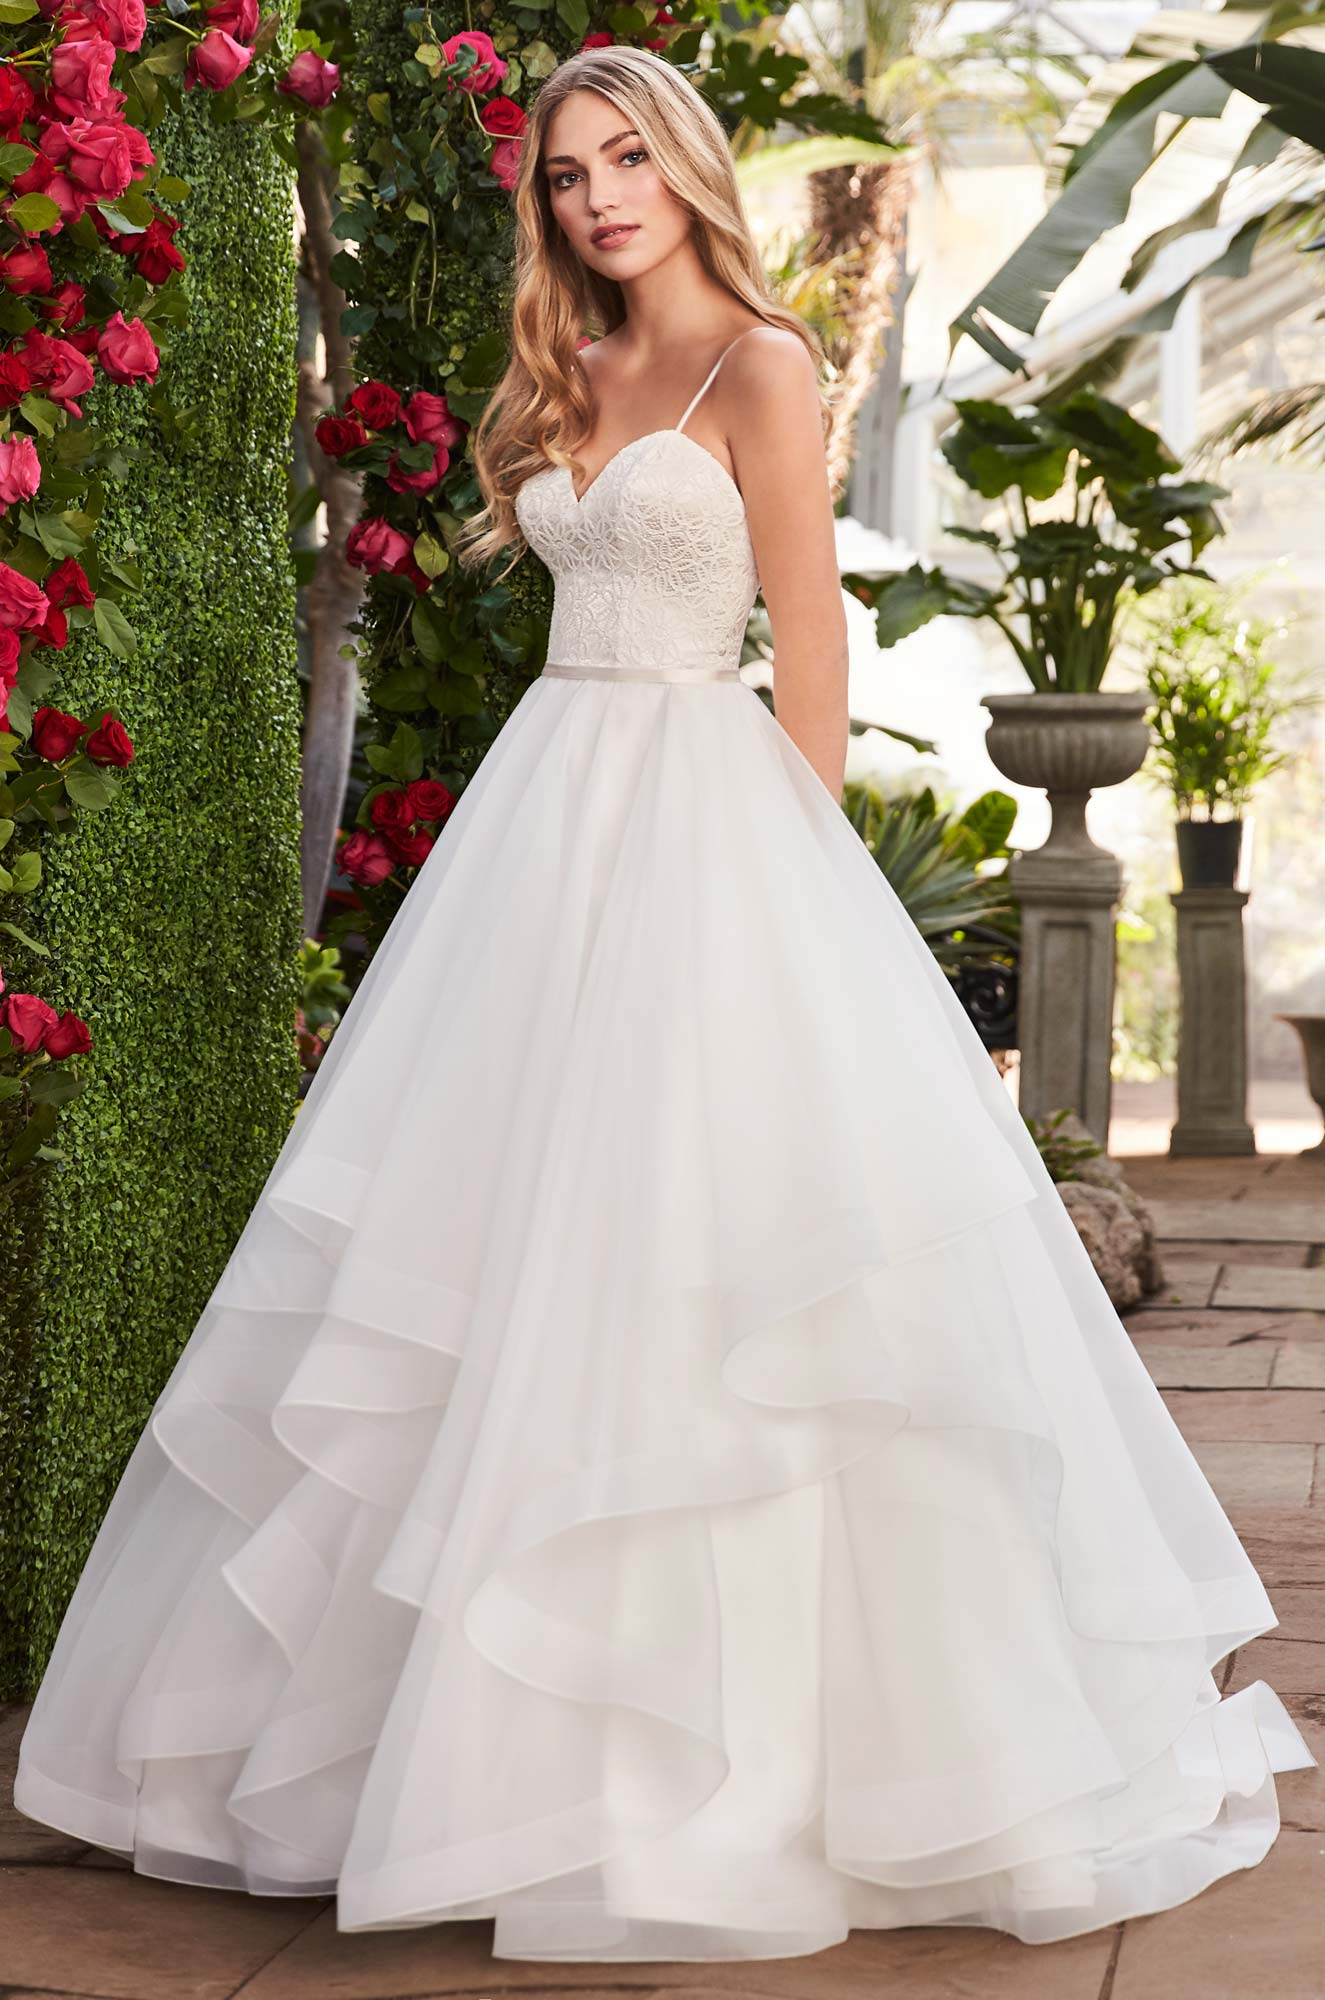 Layered Organza Wedding Dress - Style #2270 | Mikaella Bridal